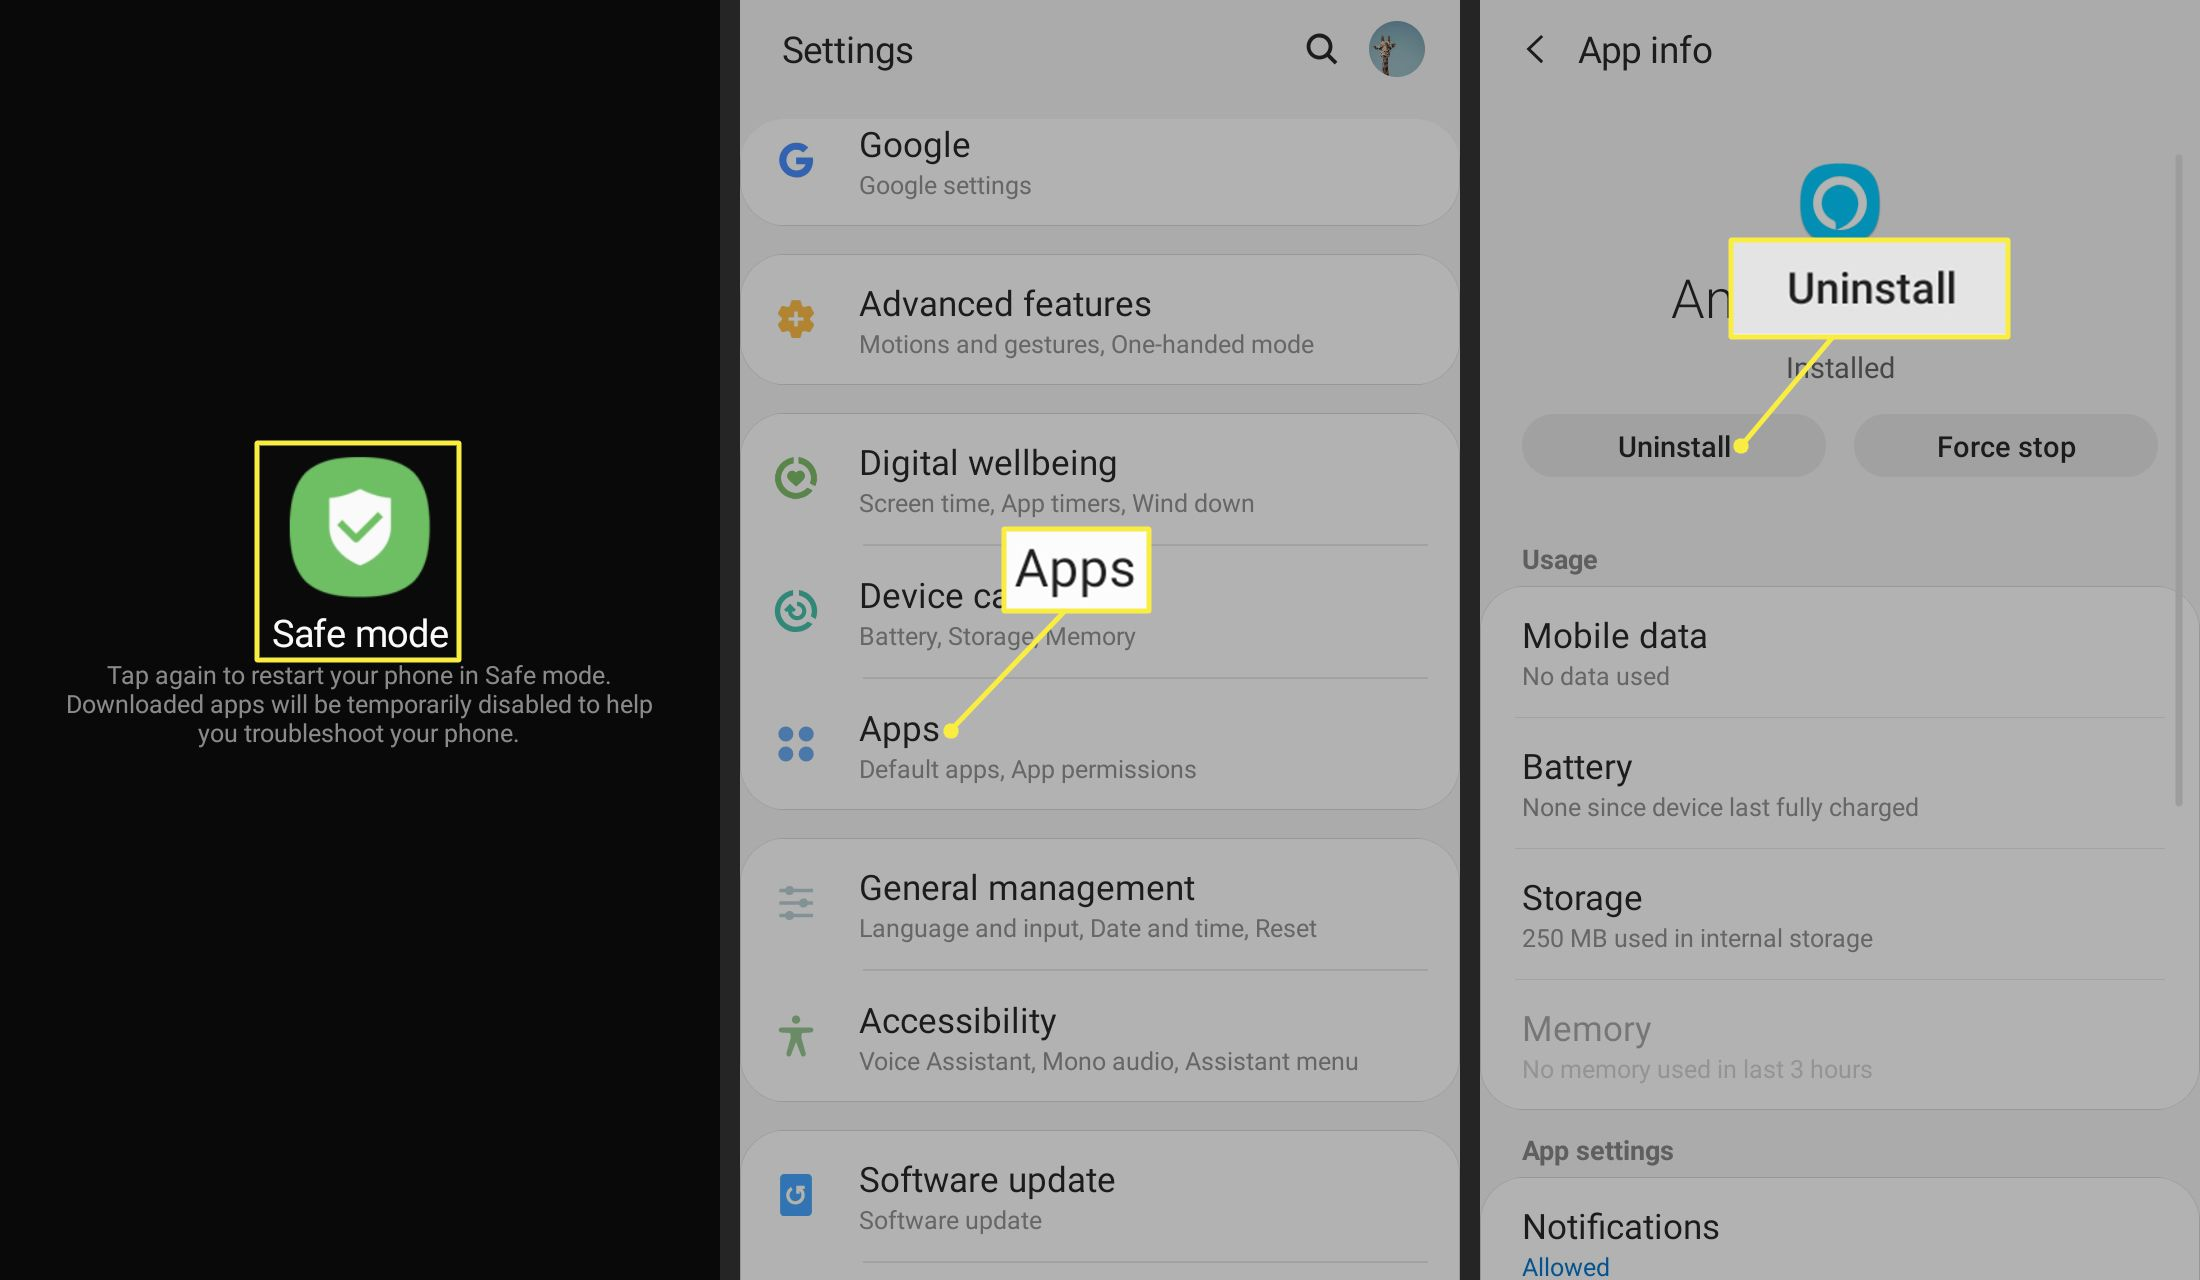 Safe Mode, Apps, and Uninstall in Android app settings